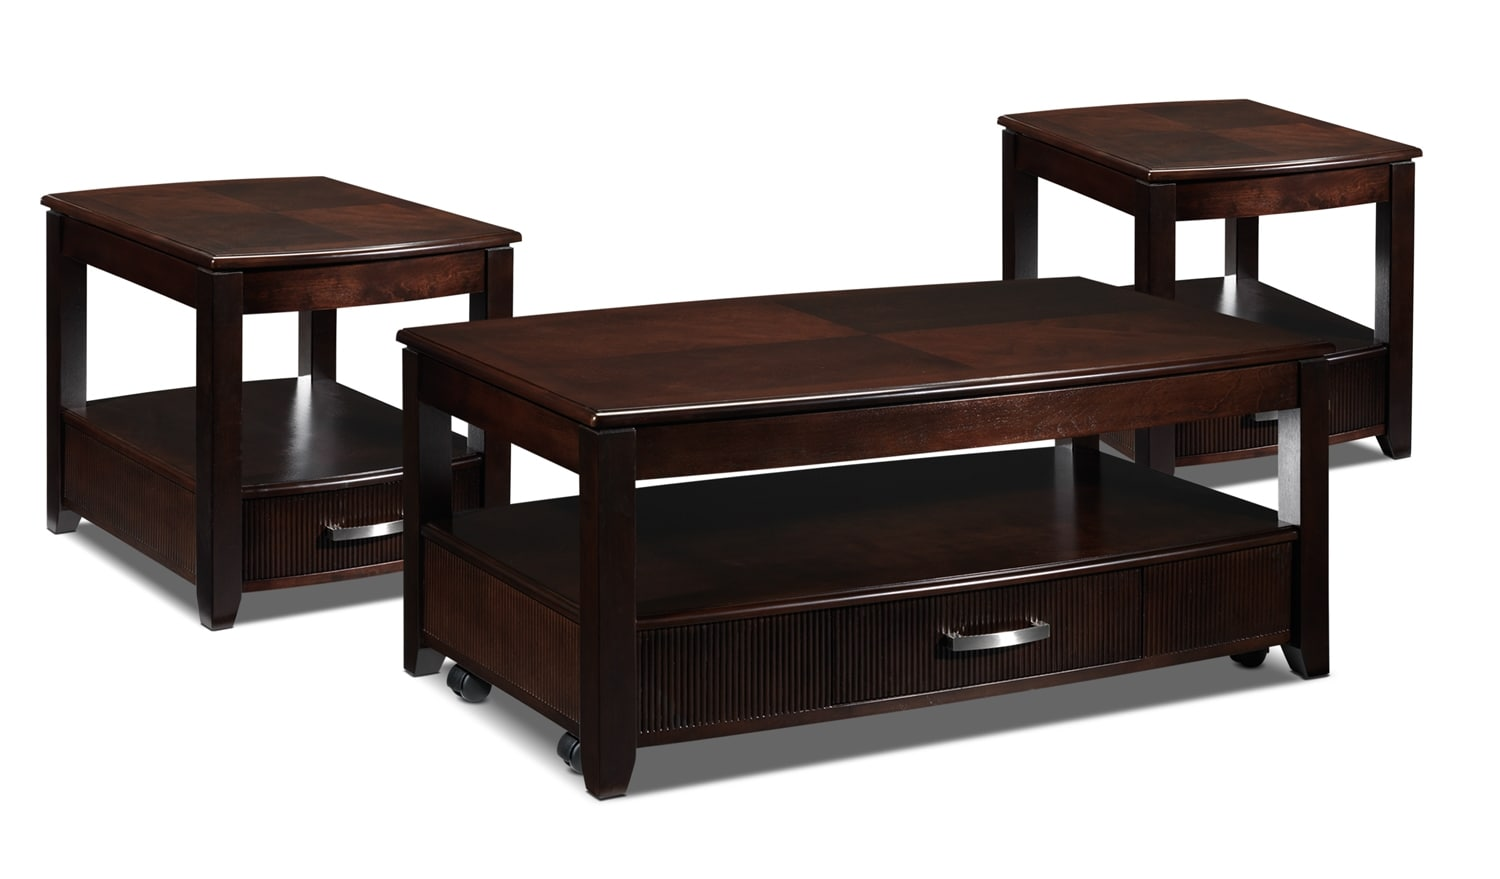 Accent and Occasional Furniture - Joanna Coffee Table and Two End Tables - Espresso